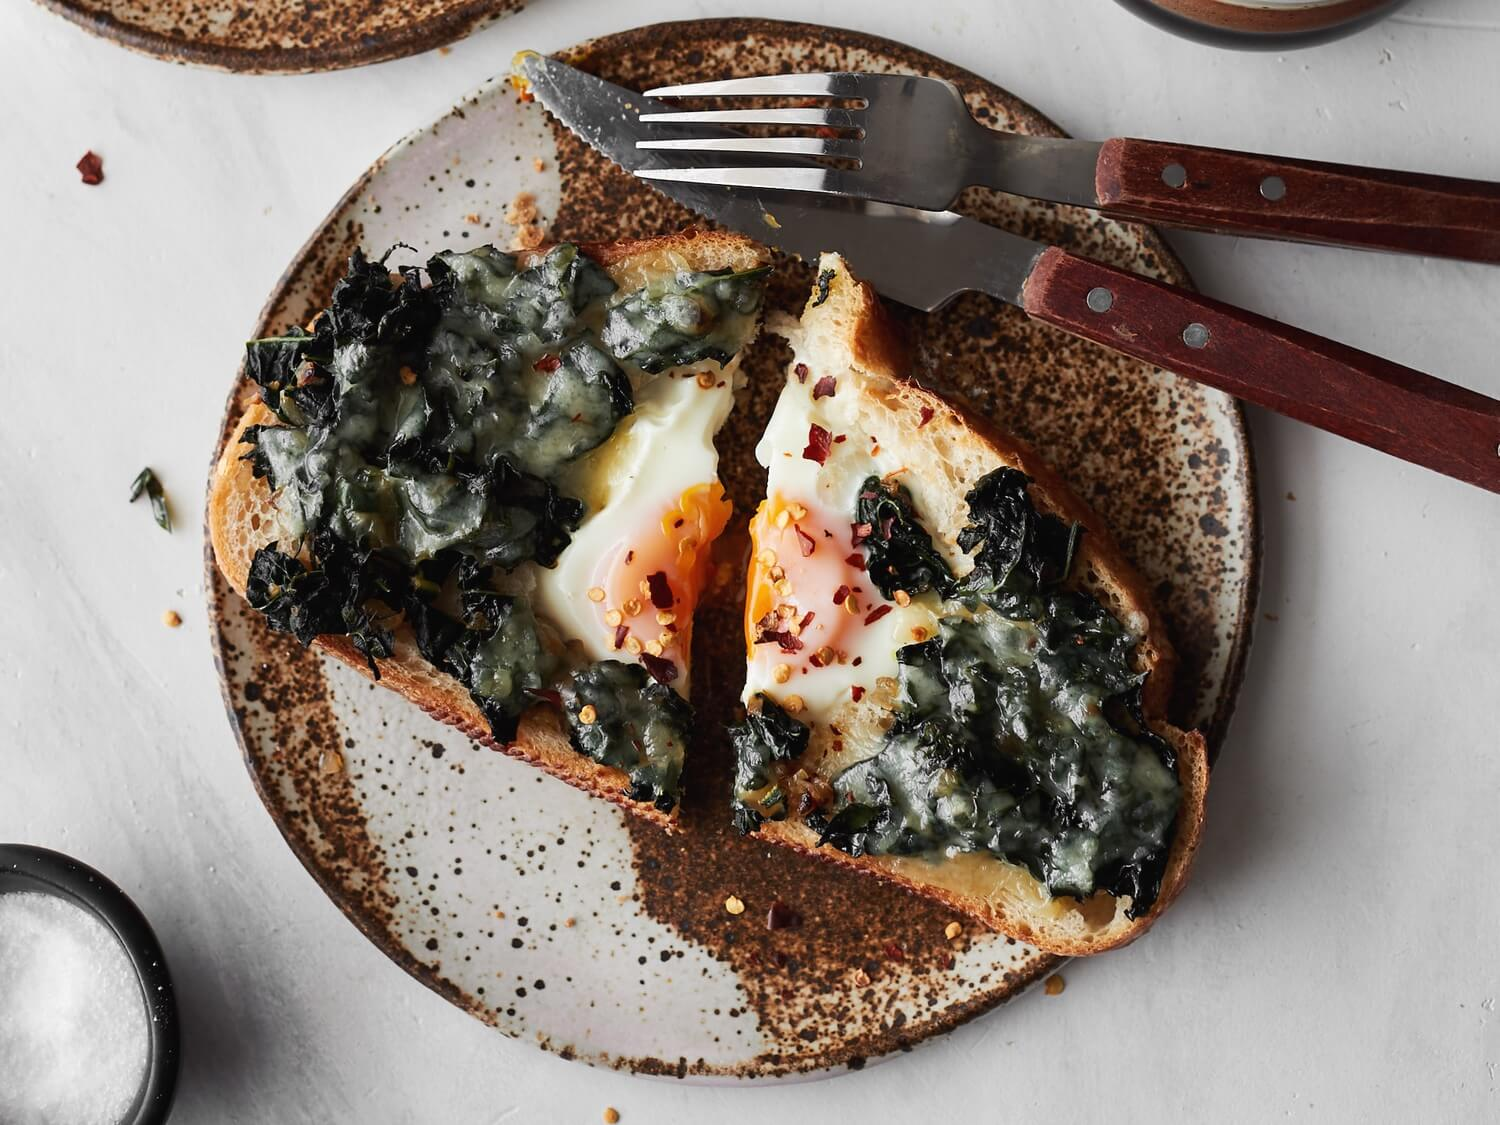 garlic-kale-egg-in-hole-web